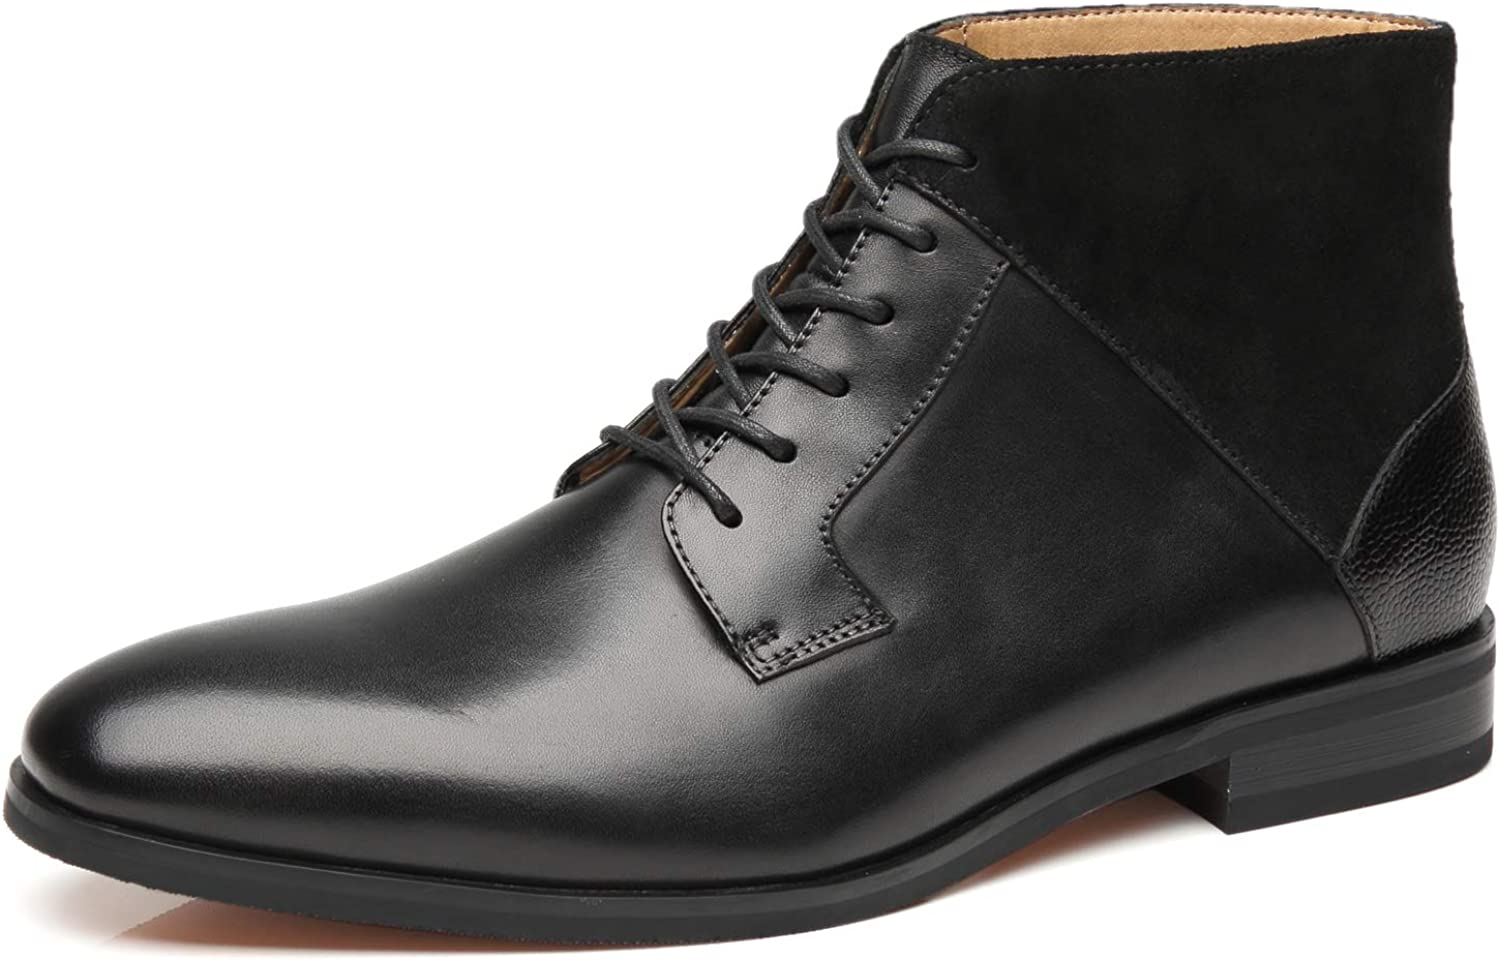 La Milano Men's Dress shoes silverinean Genuine Leather shoes Modern Classic Casual Dress Boot for Men